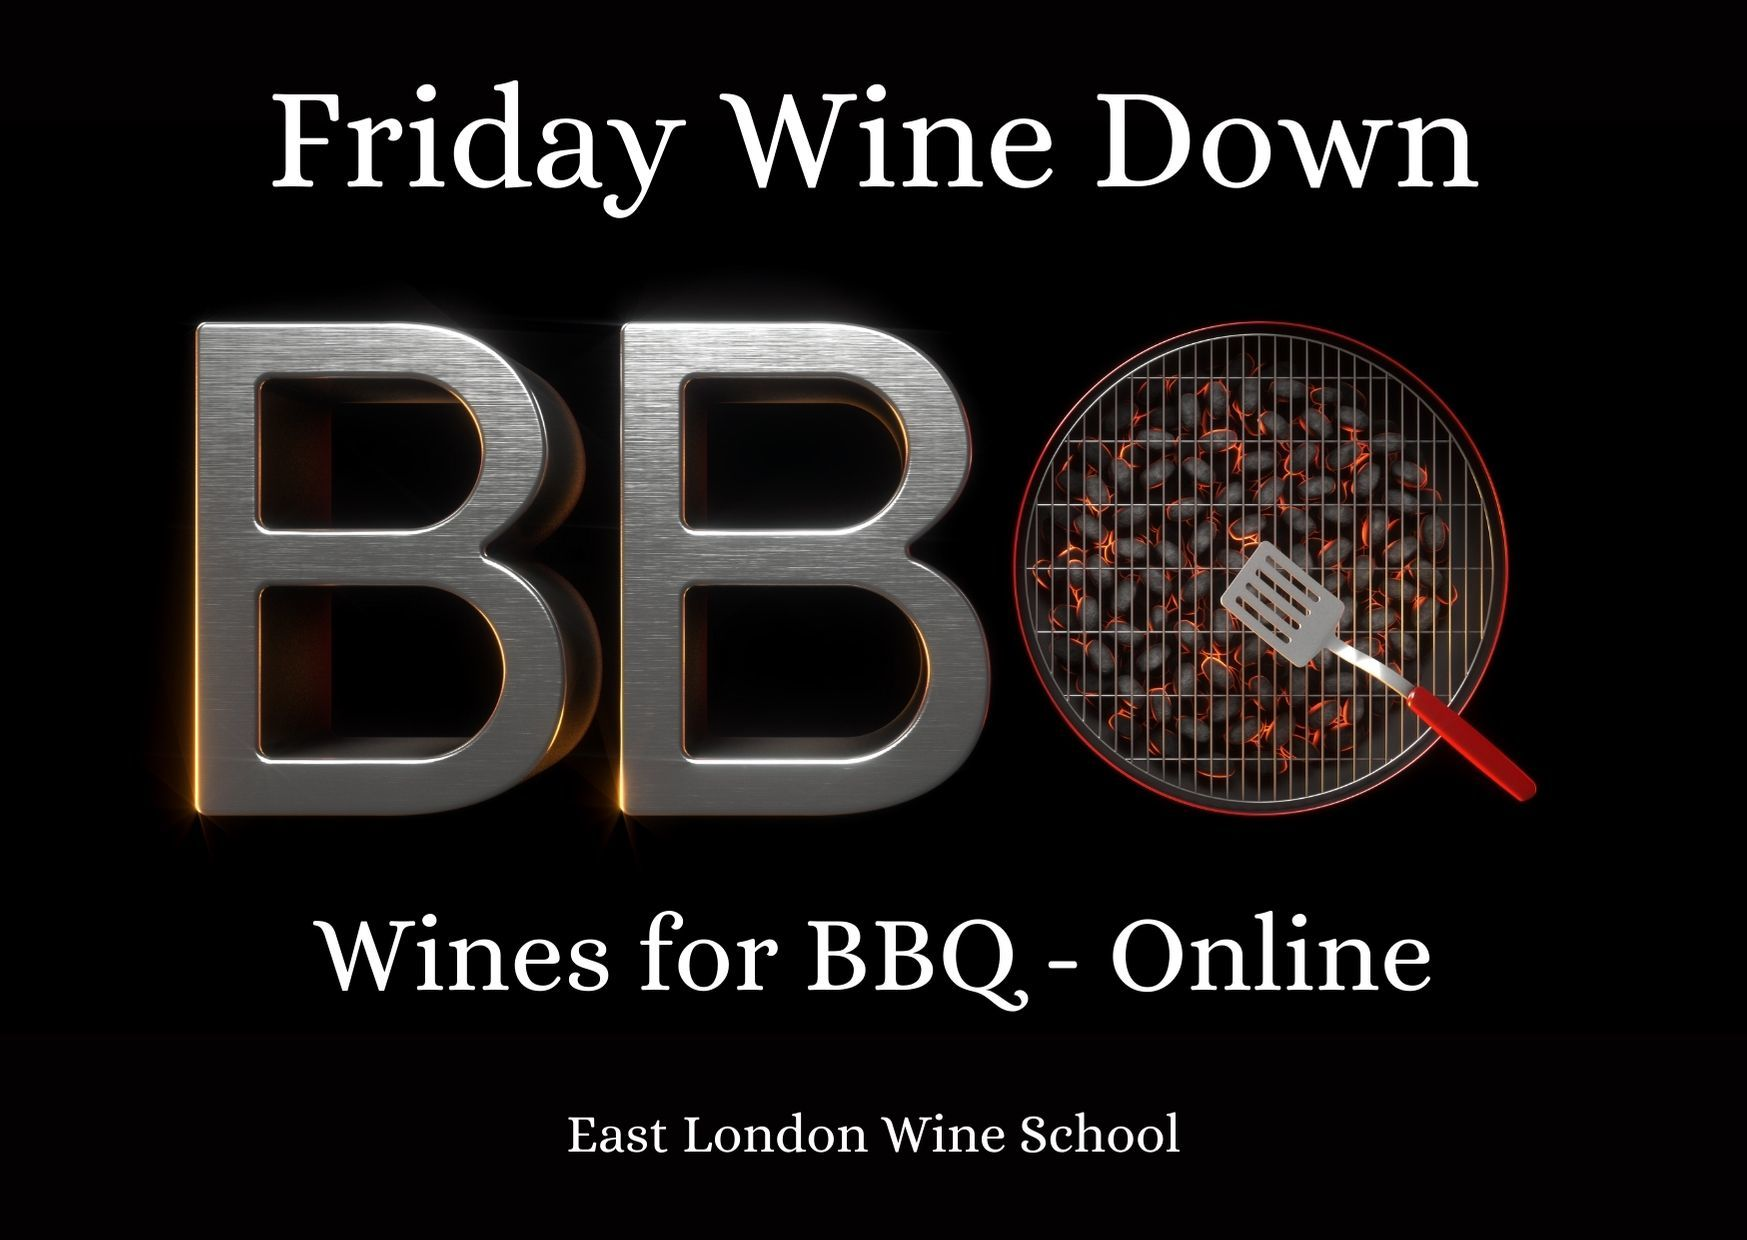 Friday Wine Down - BBQ Wines